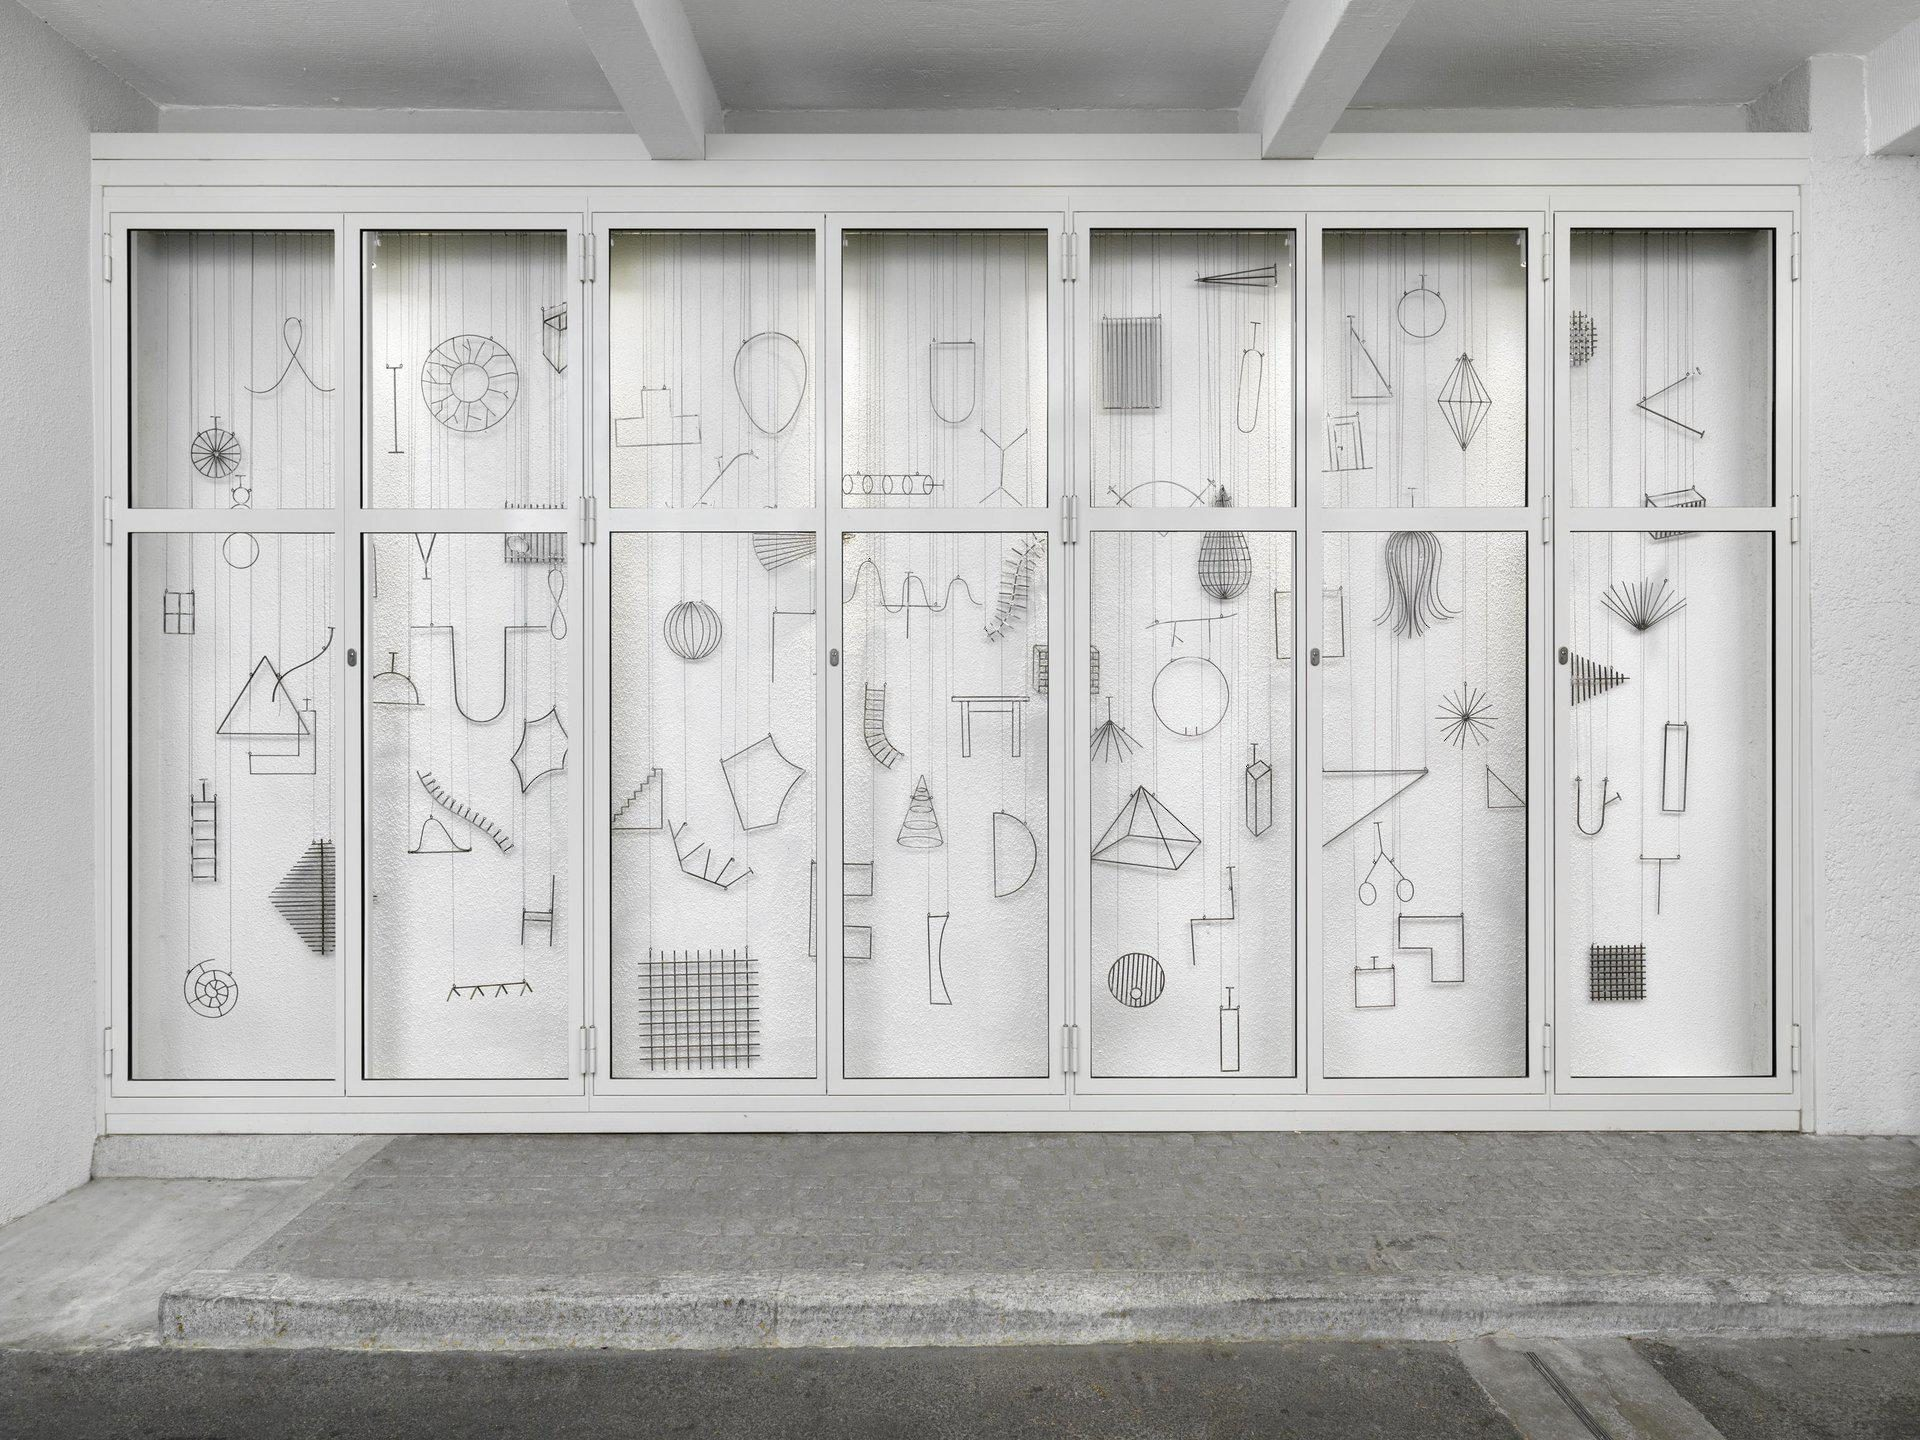 Eva Kot'átková, Psychological Theatre, Head of Karel, A Boy, Who Communicates through Signs and Simple Drawings, 2014